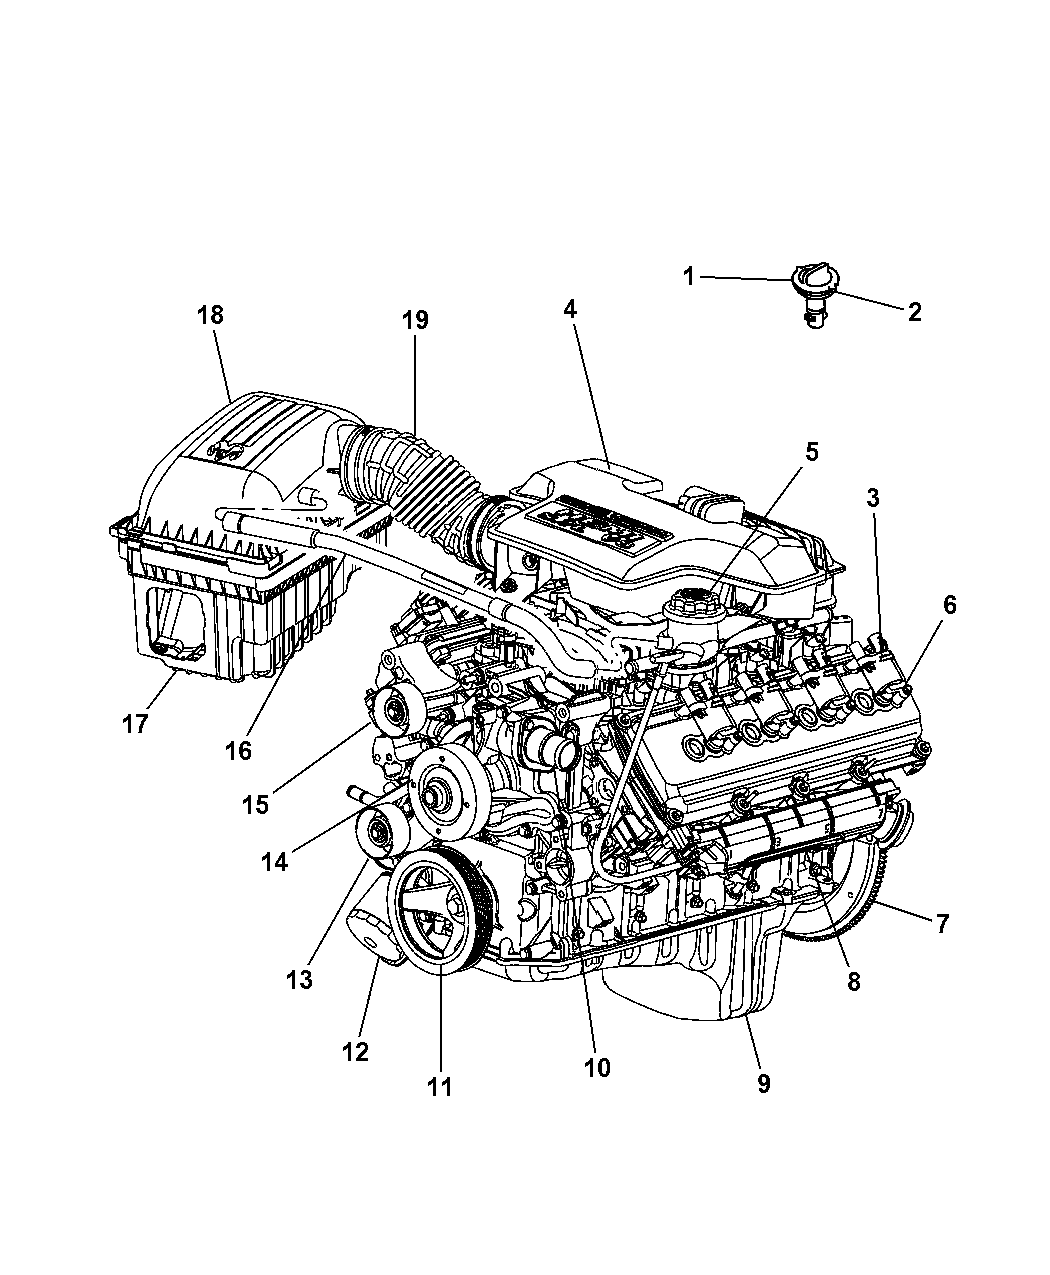 dodge 2500 engine diagram - wiring diagram spoil-delta-b -  spoil-delta-b.cinemamanzonicasarano.it  cinemamanzonicasarano.it